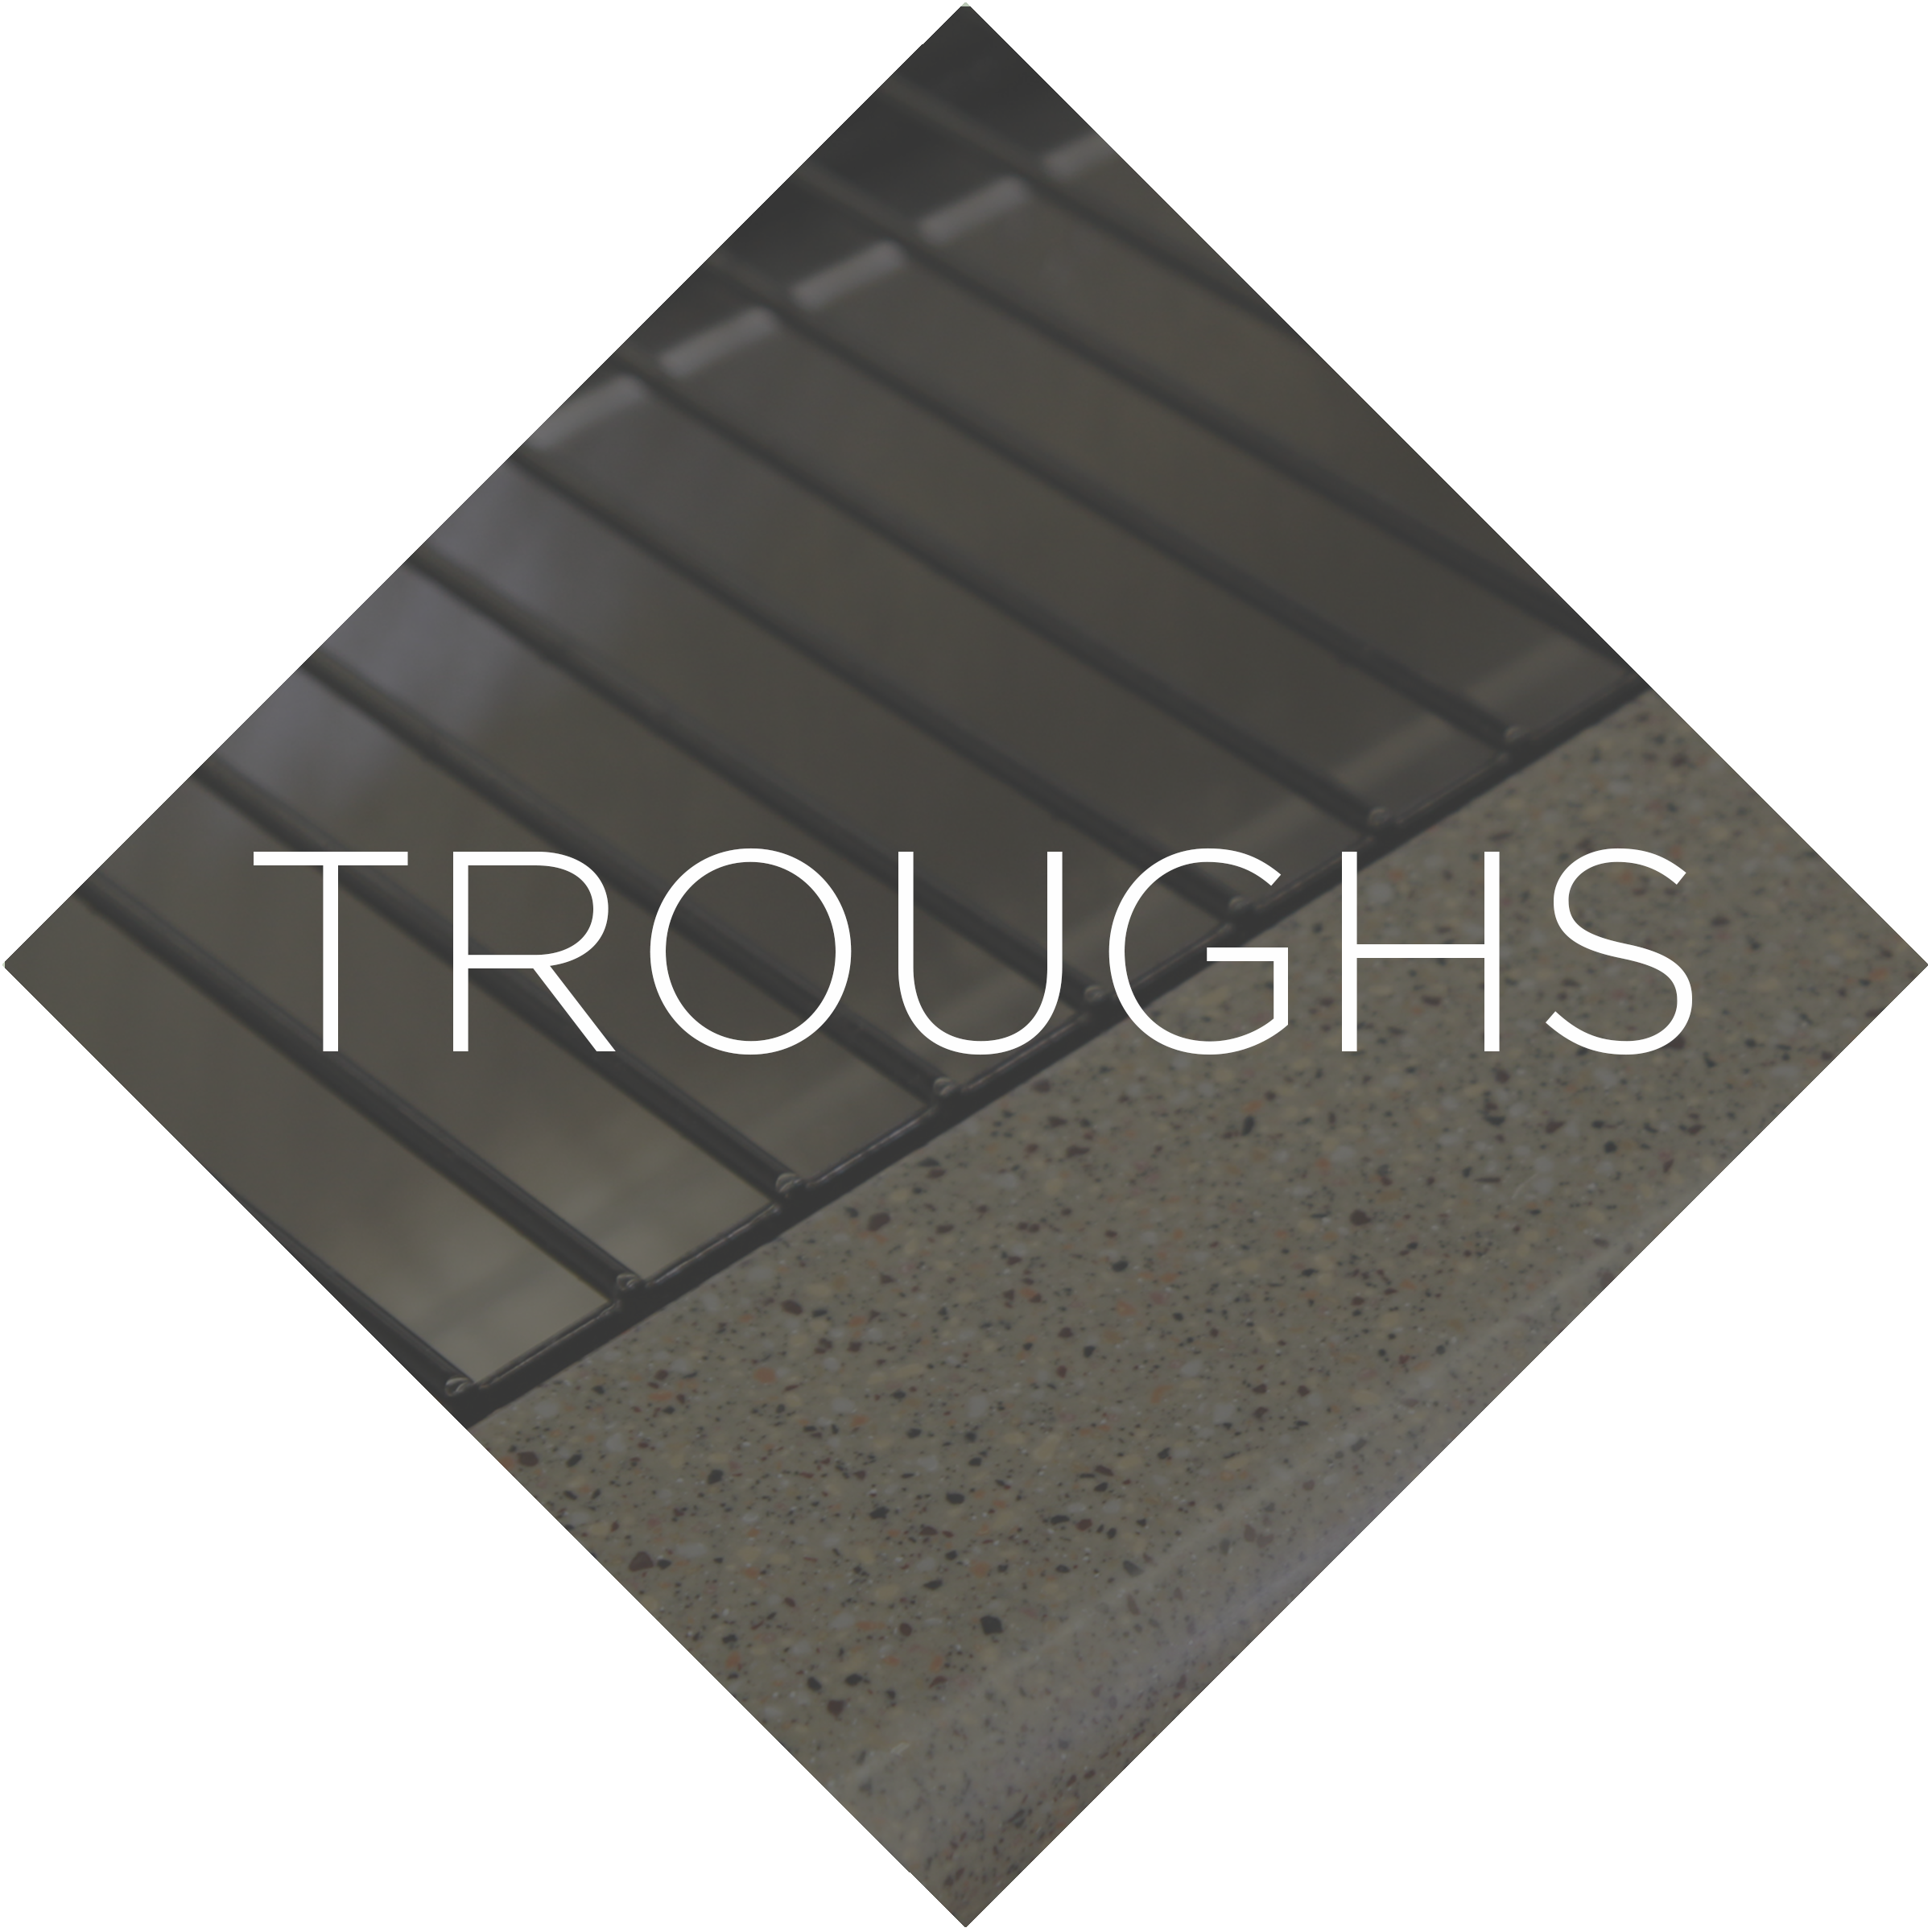 Troughs.png